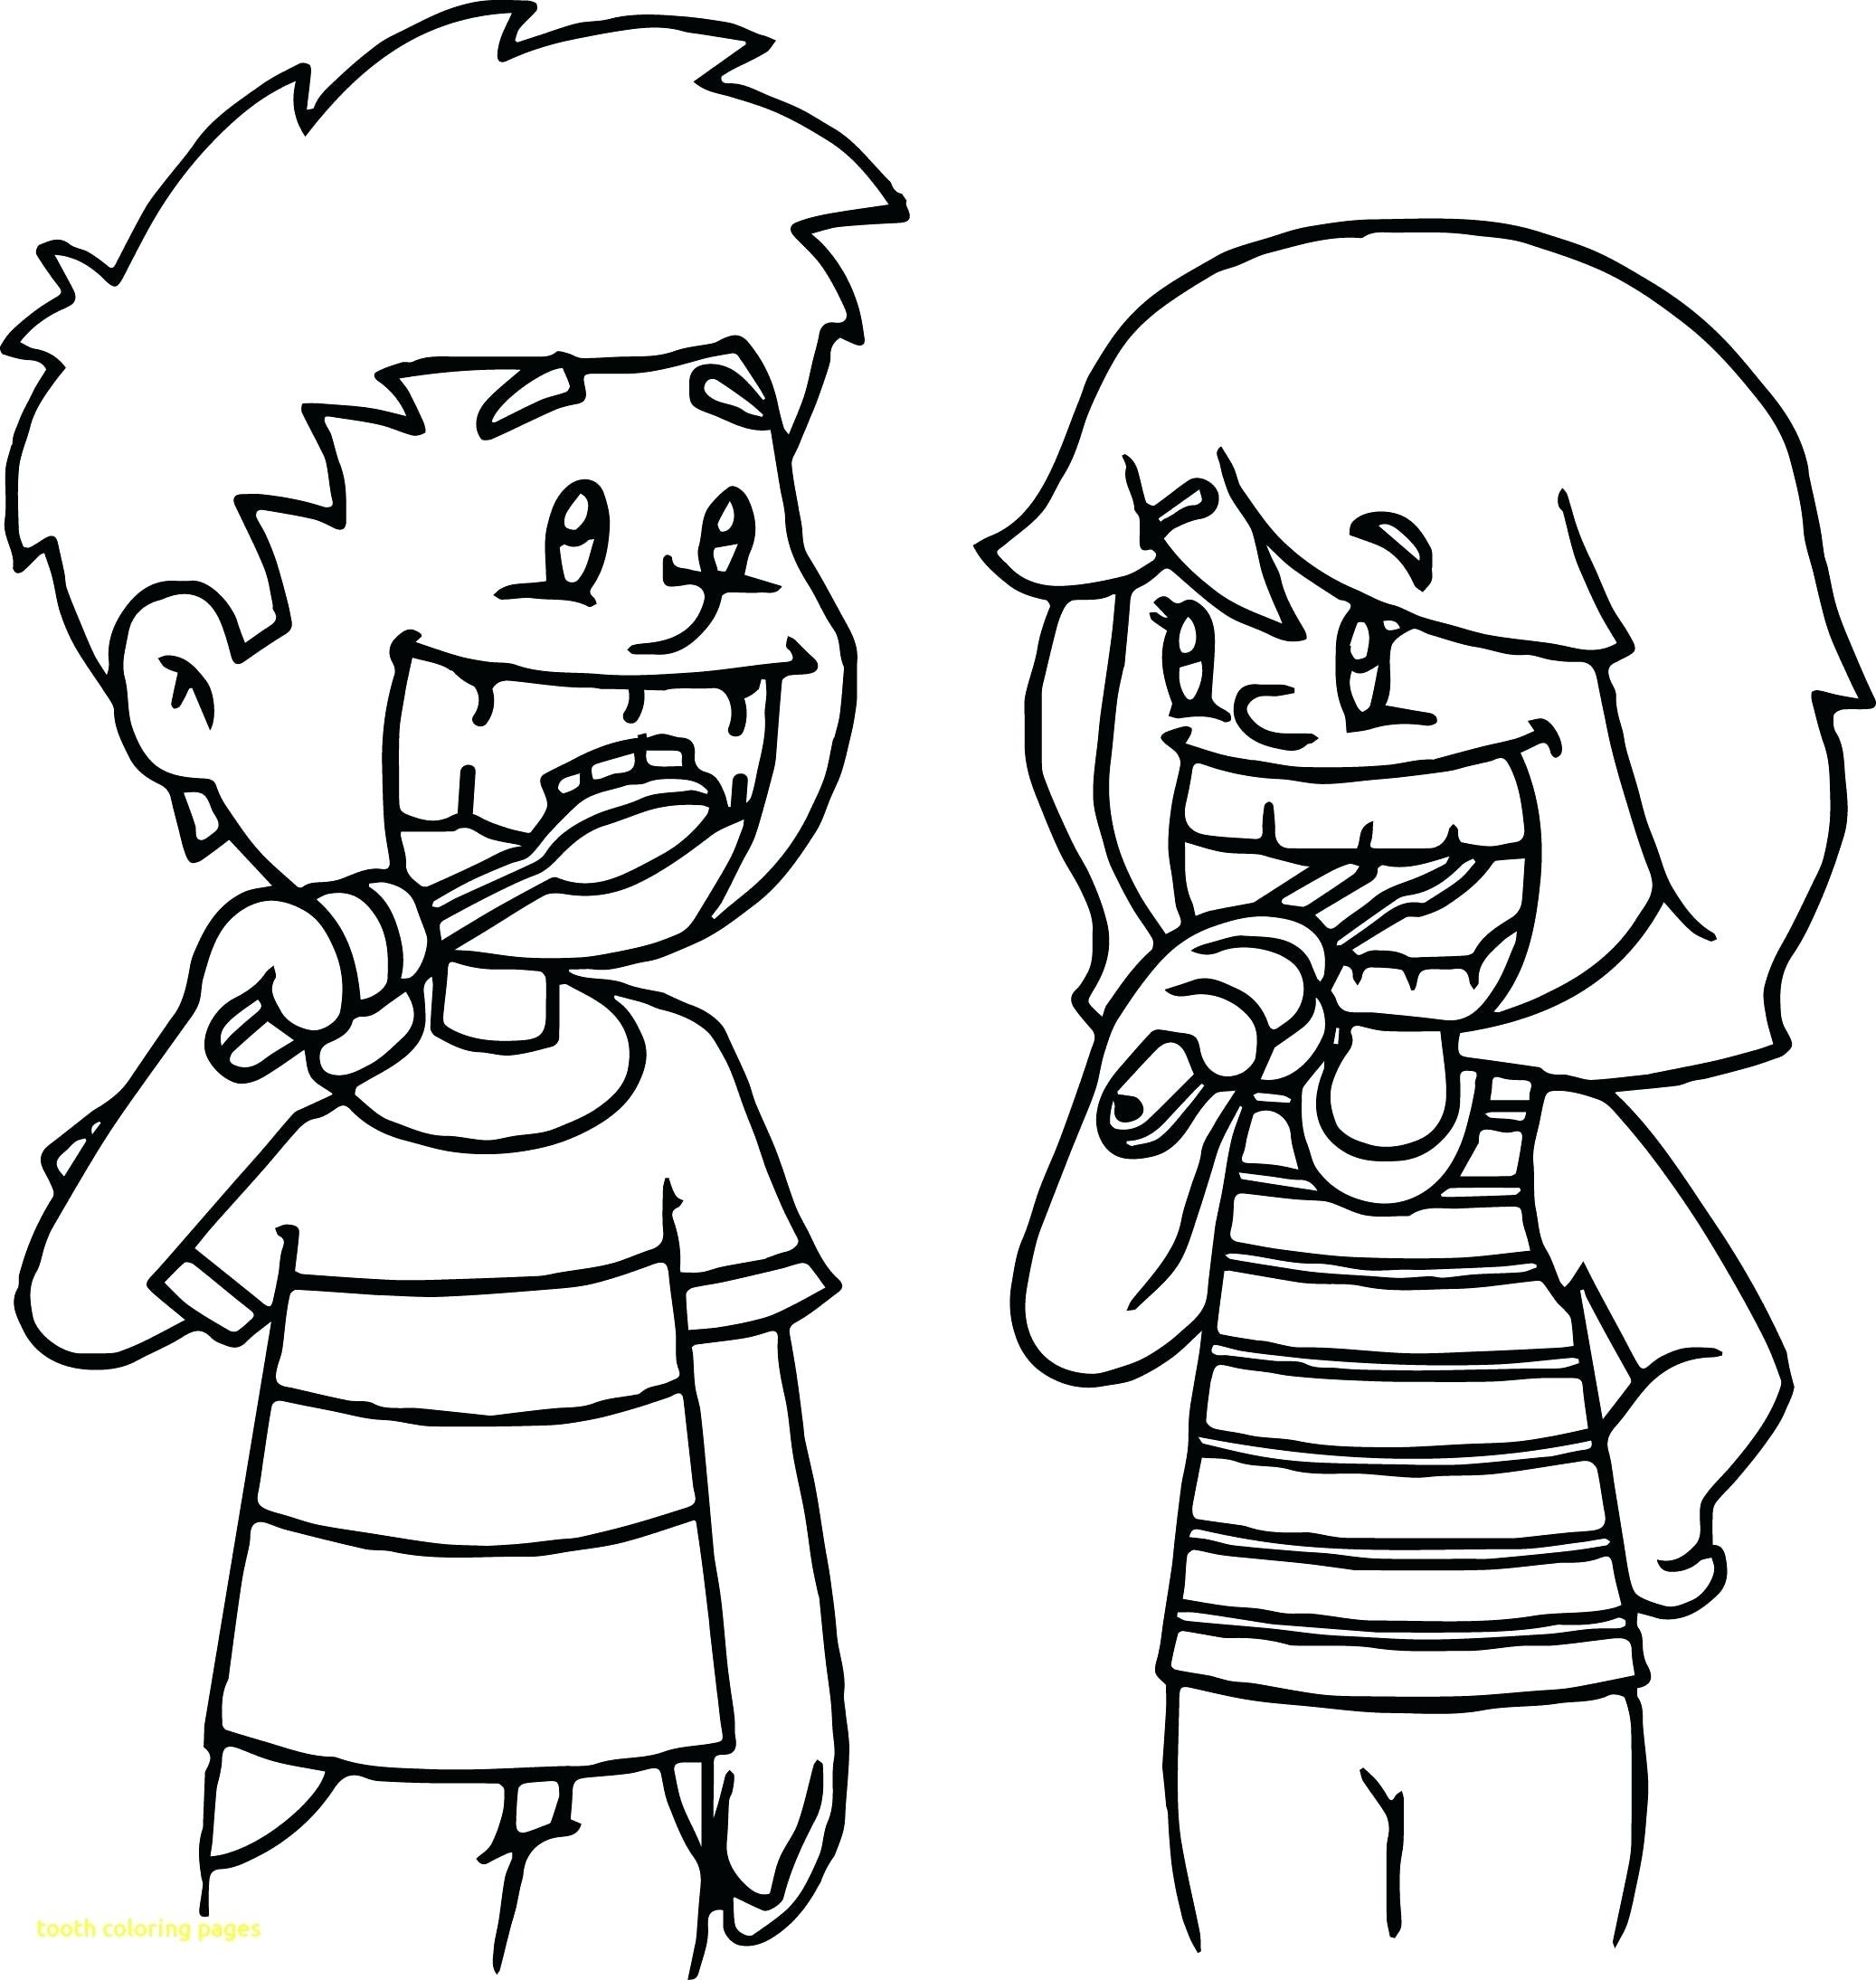 Brush teeth clipart black and white vector free download Brushing Teeth Drawing at PaintingValley.com | Explore collection of ... vector free download